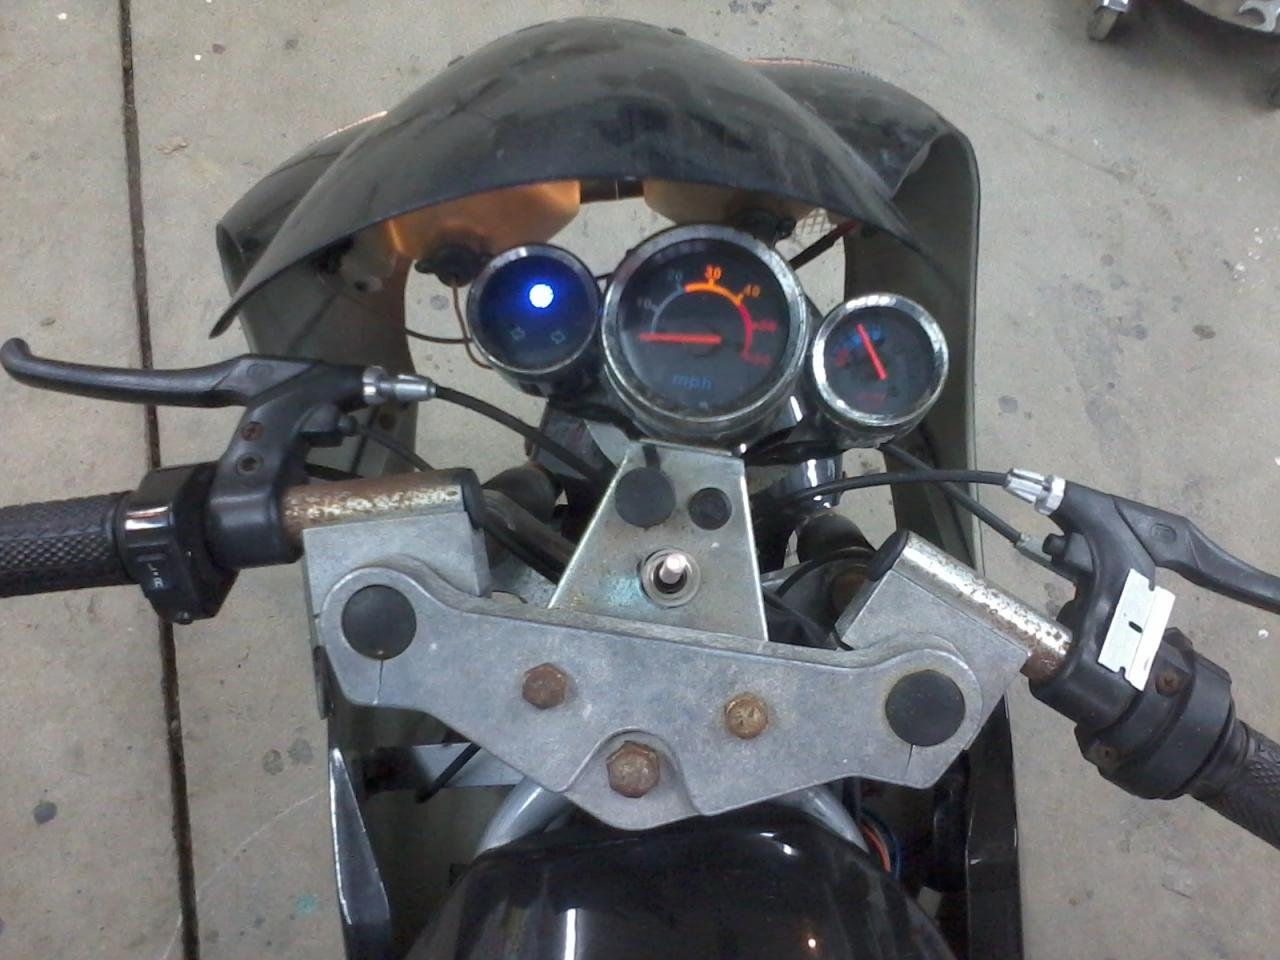 rukindcovers selling cateye pocket bike headlight covers - Yamaha ...